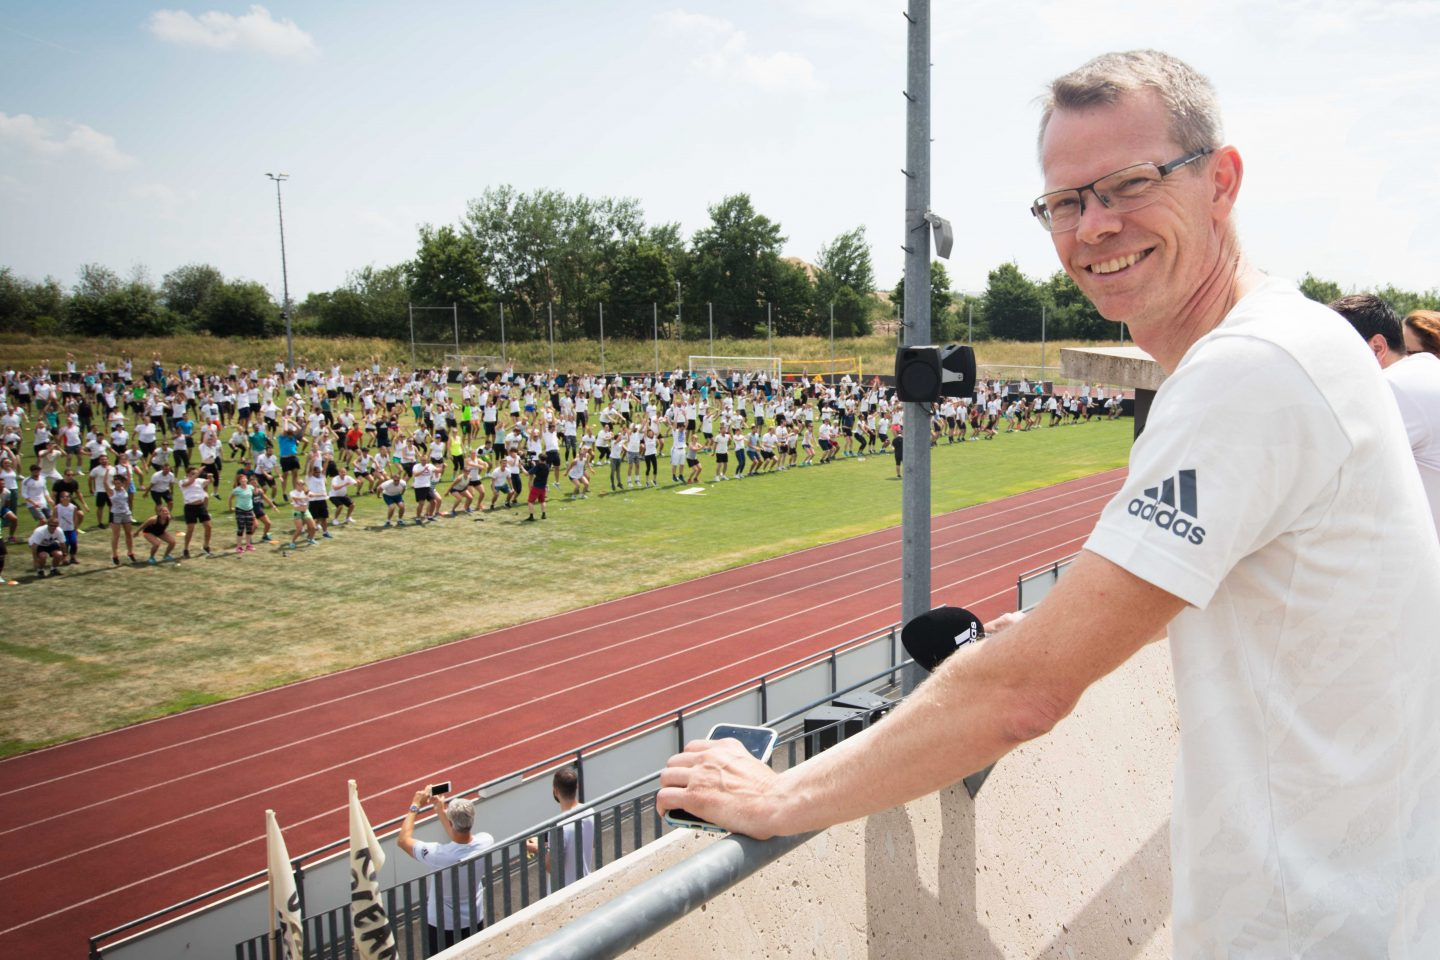 an Executive Board Member at adidas stands smiling at the efforts of adidas employees in preparation for Run For The Oceans. team, sports, adidas, run for the oceans